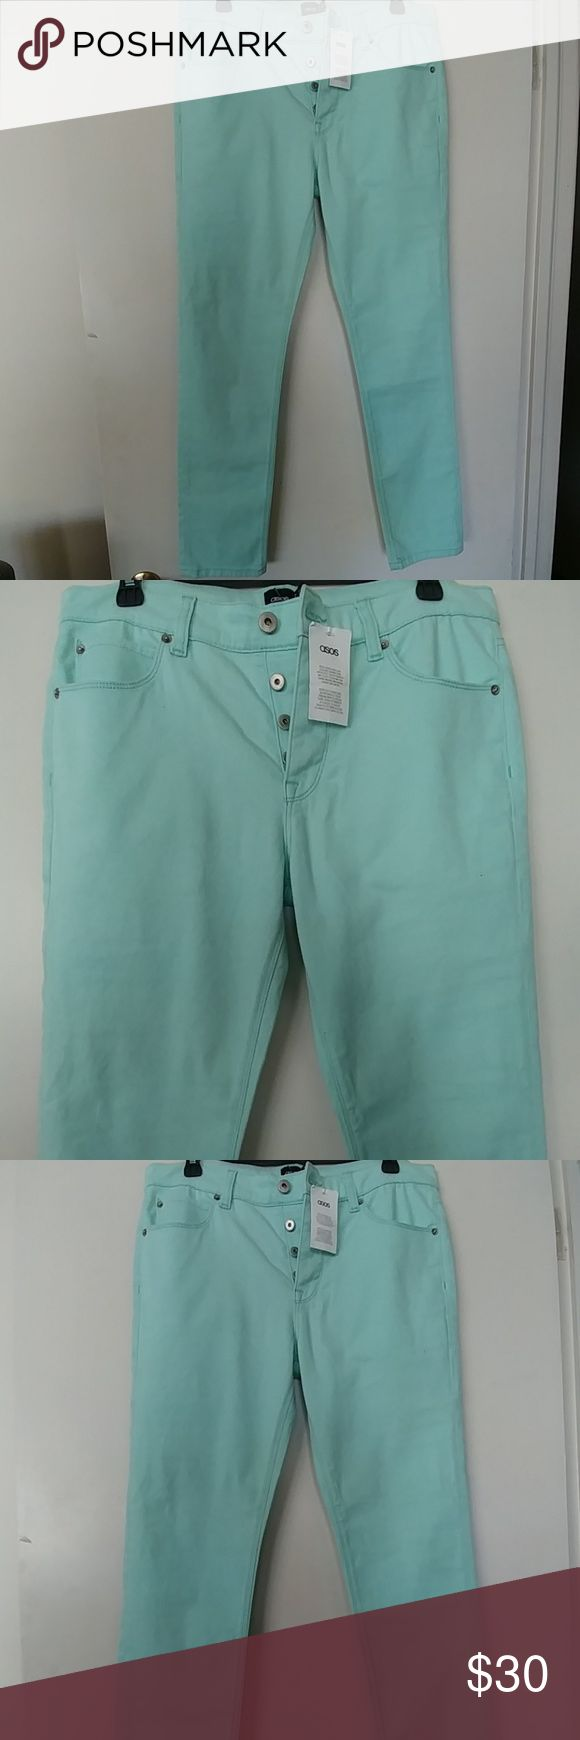 🍧HP🍒NWT 🆕 ASOS MINT GREEN SKINNY JEANS SIZE 32 💗💕💞💕HOST PICK💚💛💜👔👝👙HOST PICK👛👘🎽👠🙎🙇👖👚👓👝🌂👝👔👓💼💑🐼🐥🐘🐺🐰🐨🐘🐤🐤HOST PICK🐑🐷🐯🐧🐑🐮🌒🌎🌜🌎🍂🍄🌸🐩🌸🍀🍃🌿HOST PICK💐🌱💐HOST PICK🐩🌿HOST PICK🌱🌻🍀🌻🌷🌳🐄🐎🐅🐂🐅🐁🐟🐄🐕🐳🐳🐟🐄🐅🎃🎉🎊🎈HOST PICK🎁🎋🎇🎆🎆💝🎓HOST PICK🎒🎉🎉🎋🍯🍏🍍🍊🍍🍋🍧🍩🍬🍌🍏🍋🎂🍏🍇🍈🍐🍊🍭🍇  🆕  NWT ASOS MINT GREEN SKINNY JEANS.  SIZE 32.  BUTTON FLY CLOSURE. ASOS Pants Skinny